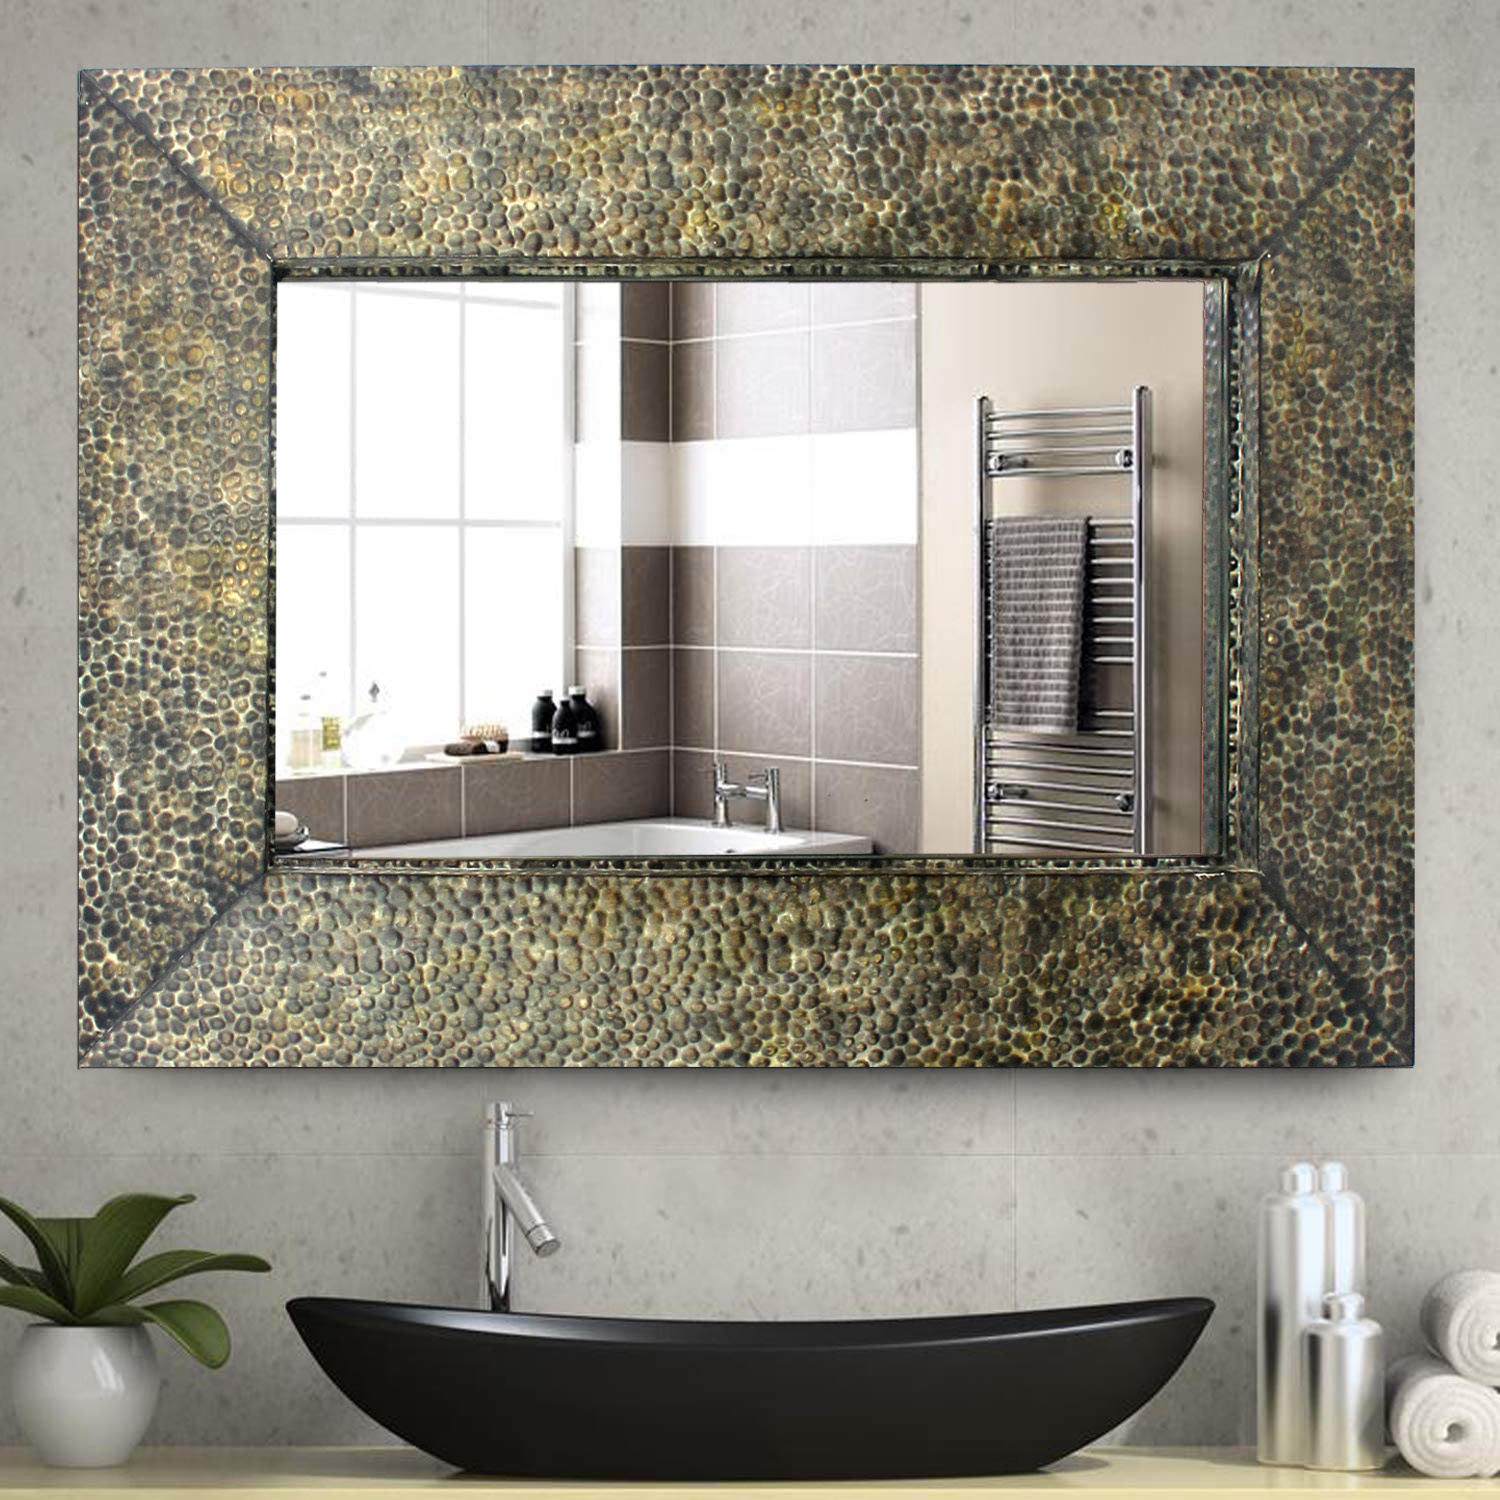 Coastal Dressing Mirror with Gravel-like Mosaic Frame - Teton Home WD-053